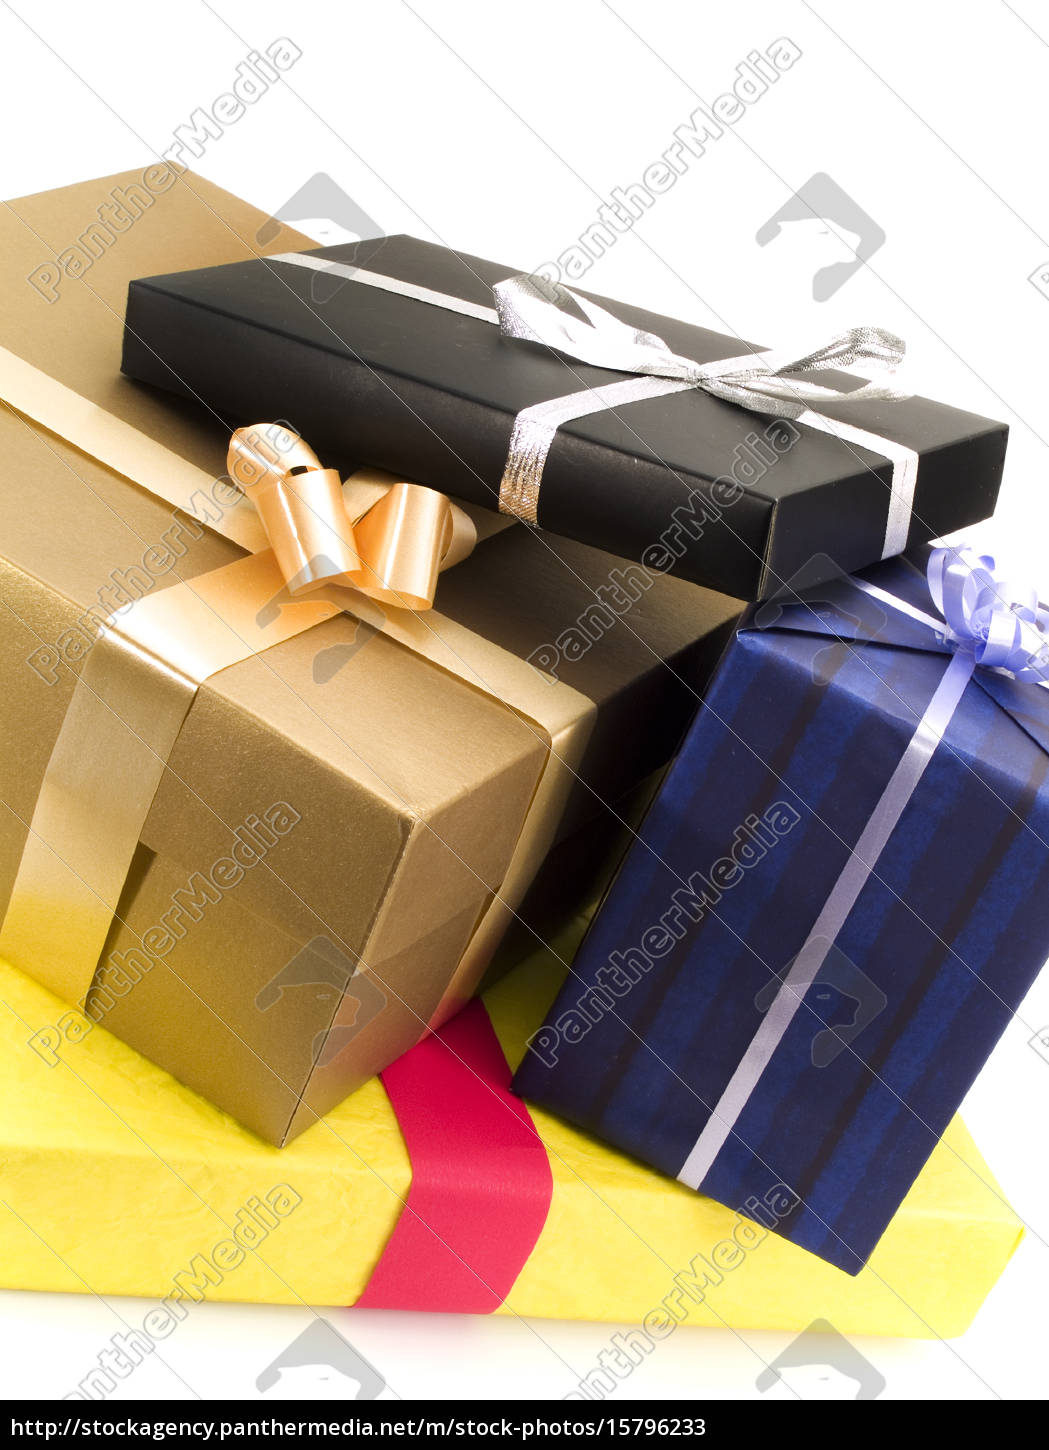 colorful, presents, colorful, presents, colorful, presents, colorful, presents - 15796233